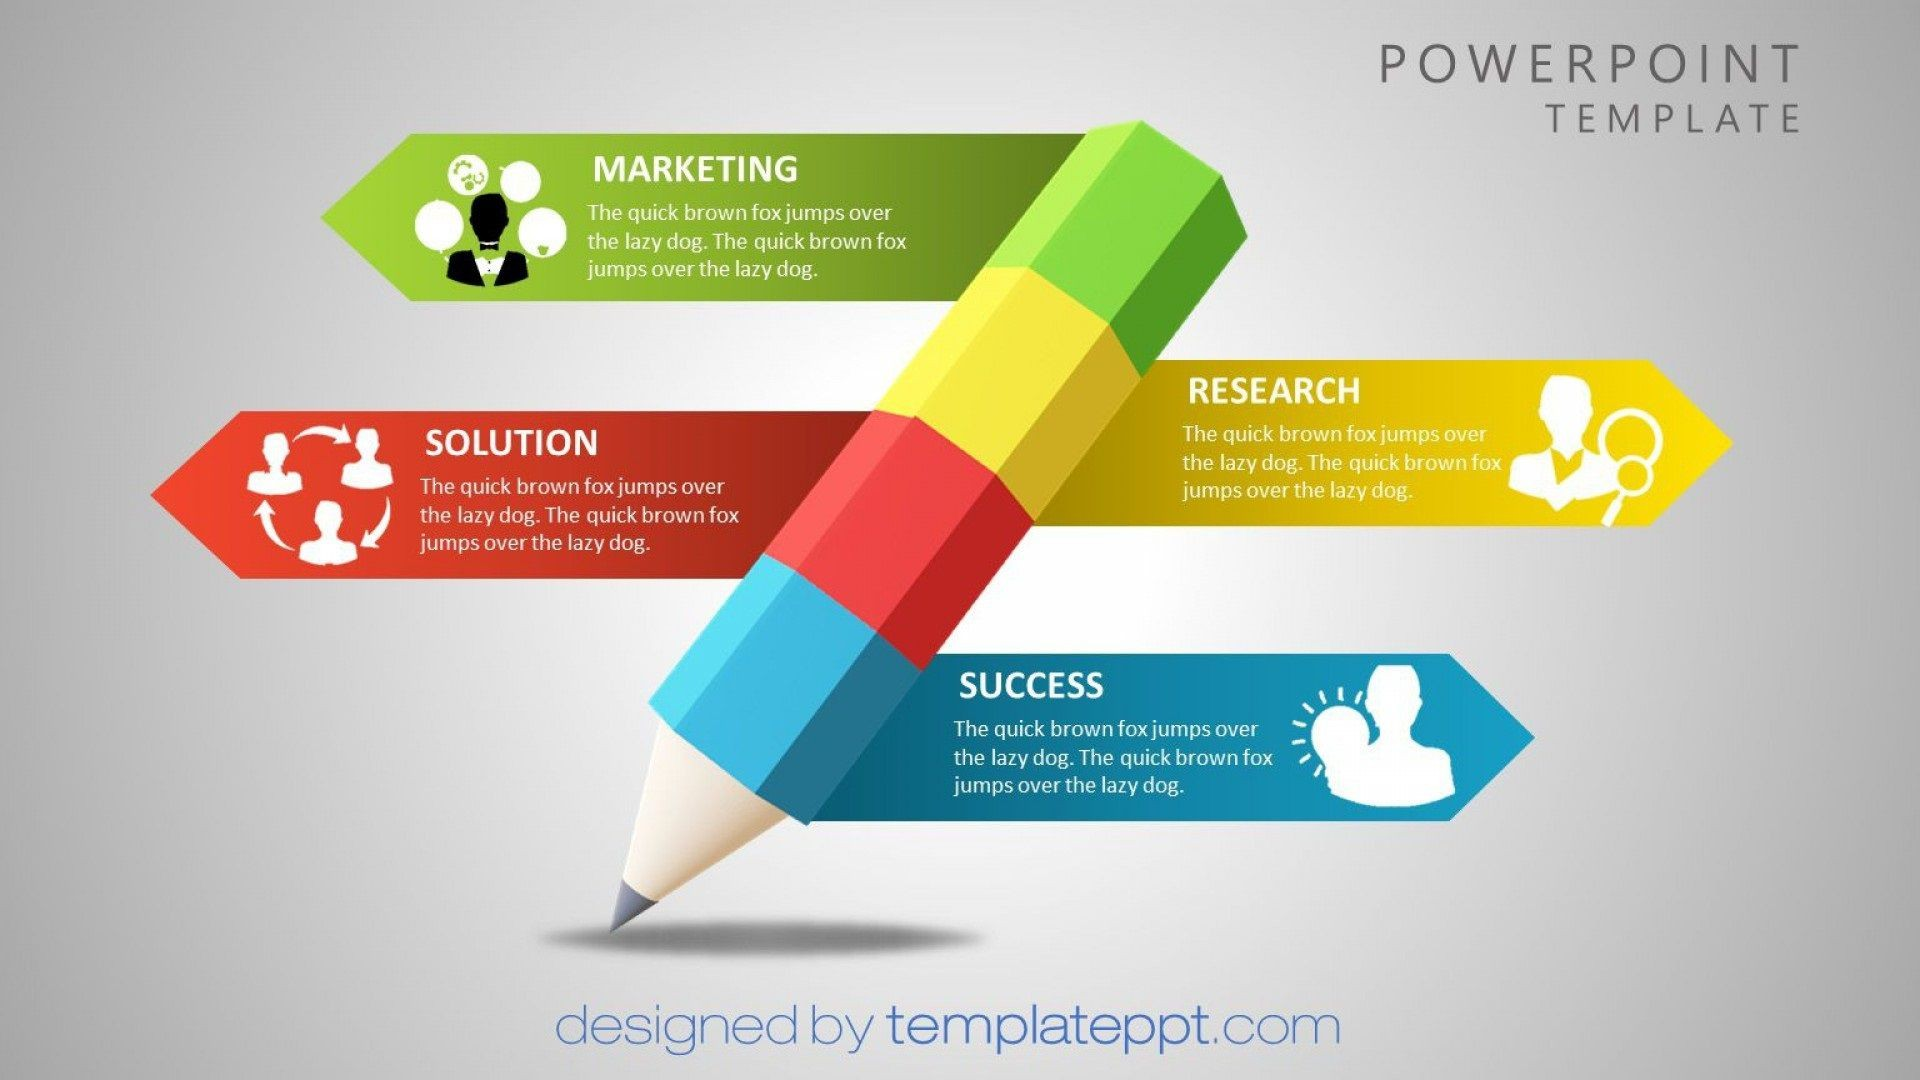 003 Remarkable 3d Animated Powerpoint Template Free Download 2010 Example 1920